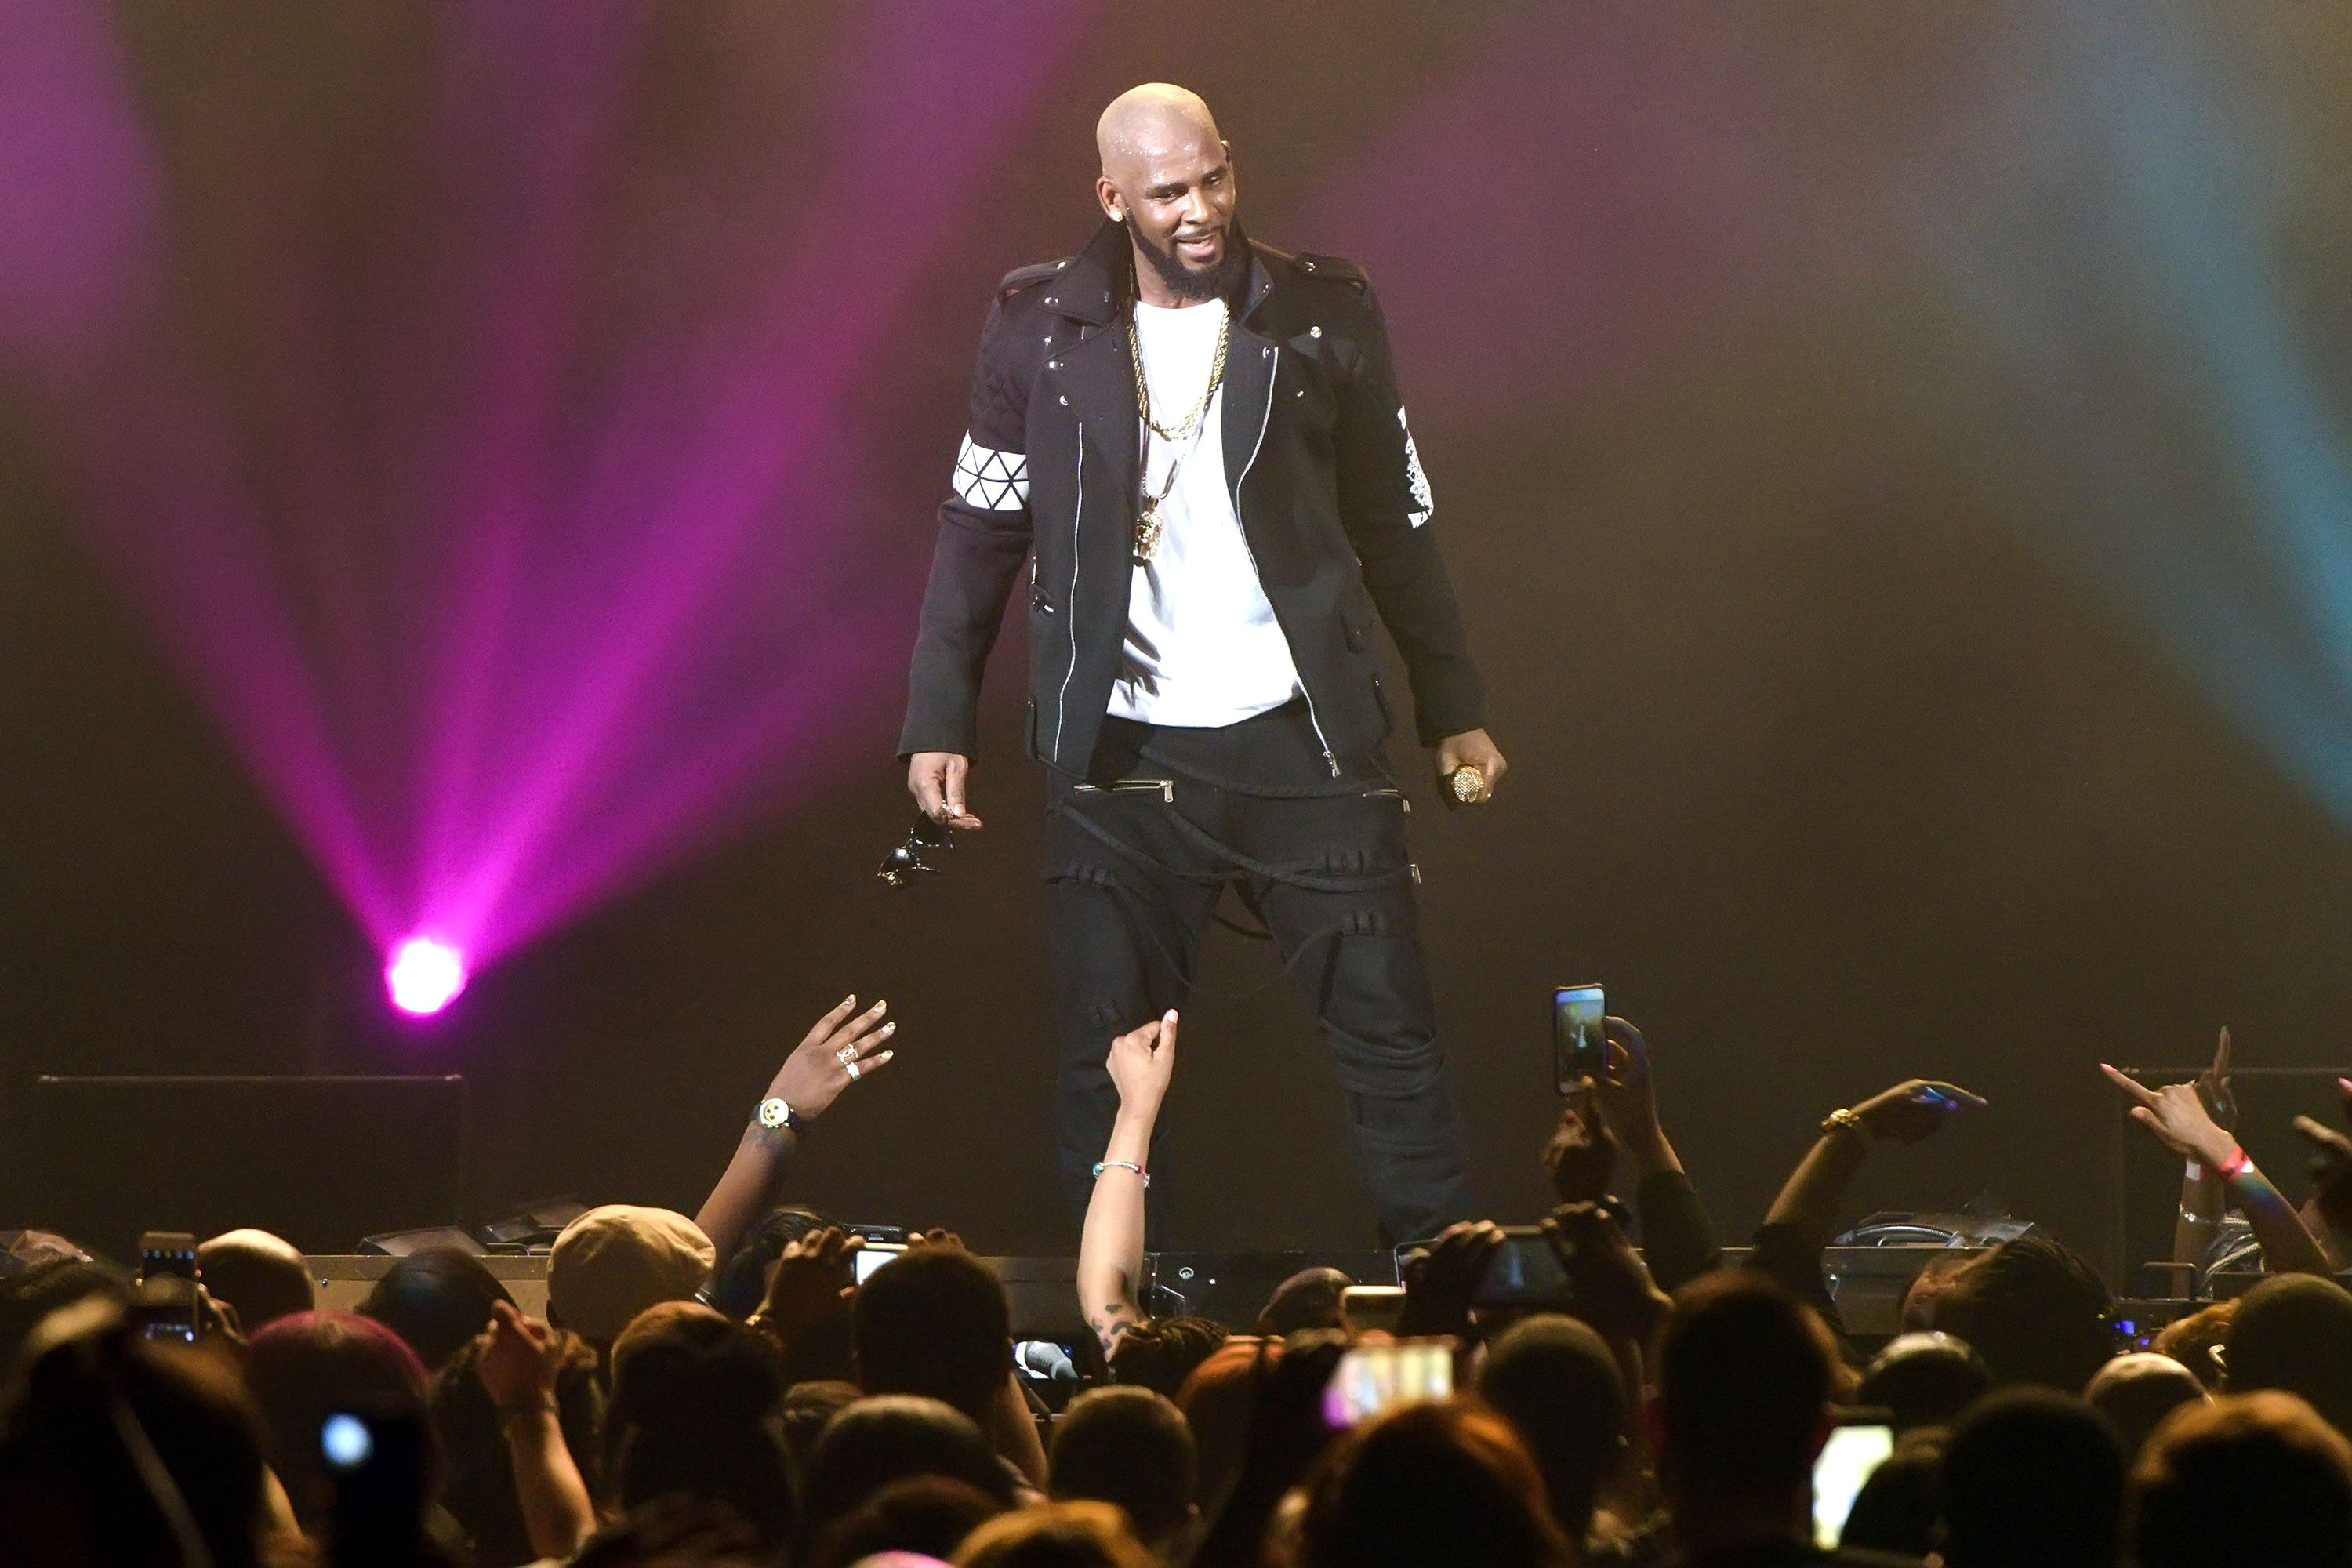 SURVIVING R KELLY DOCUMENTARY BBC 3 - Surviving R Kelly - a